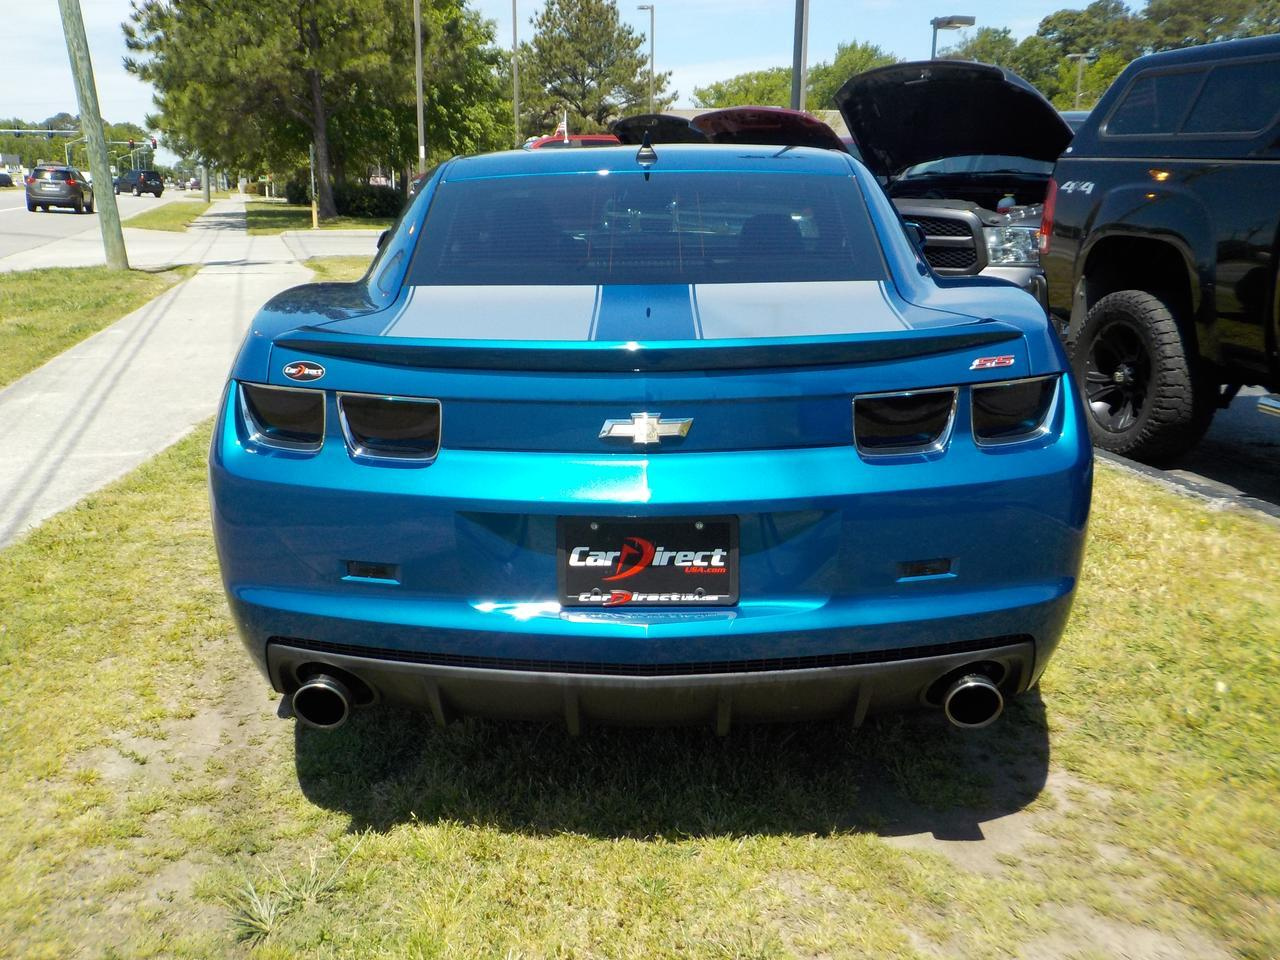 2010 CHEVROLET CAMARO COUPE 2SS, WARRANTY, LEATHER, HOT CAM, HEADERS, EXHAUST, LOADED AND DONE RIGHT, BEAUTIFUL CAR!!!! Virginia Beach VA